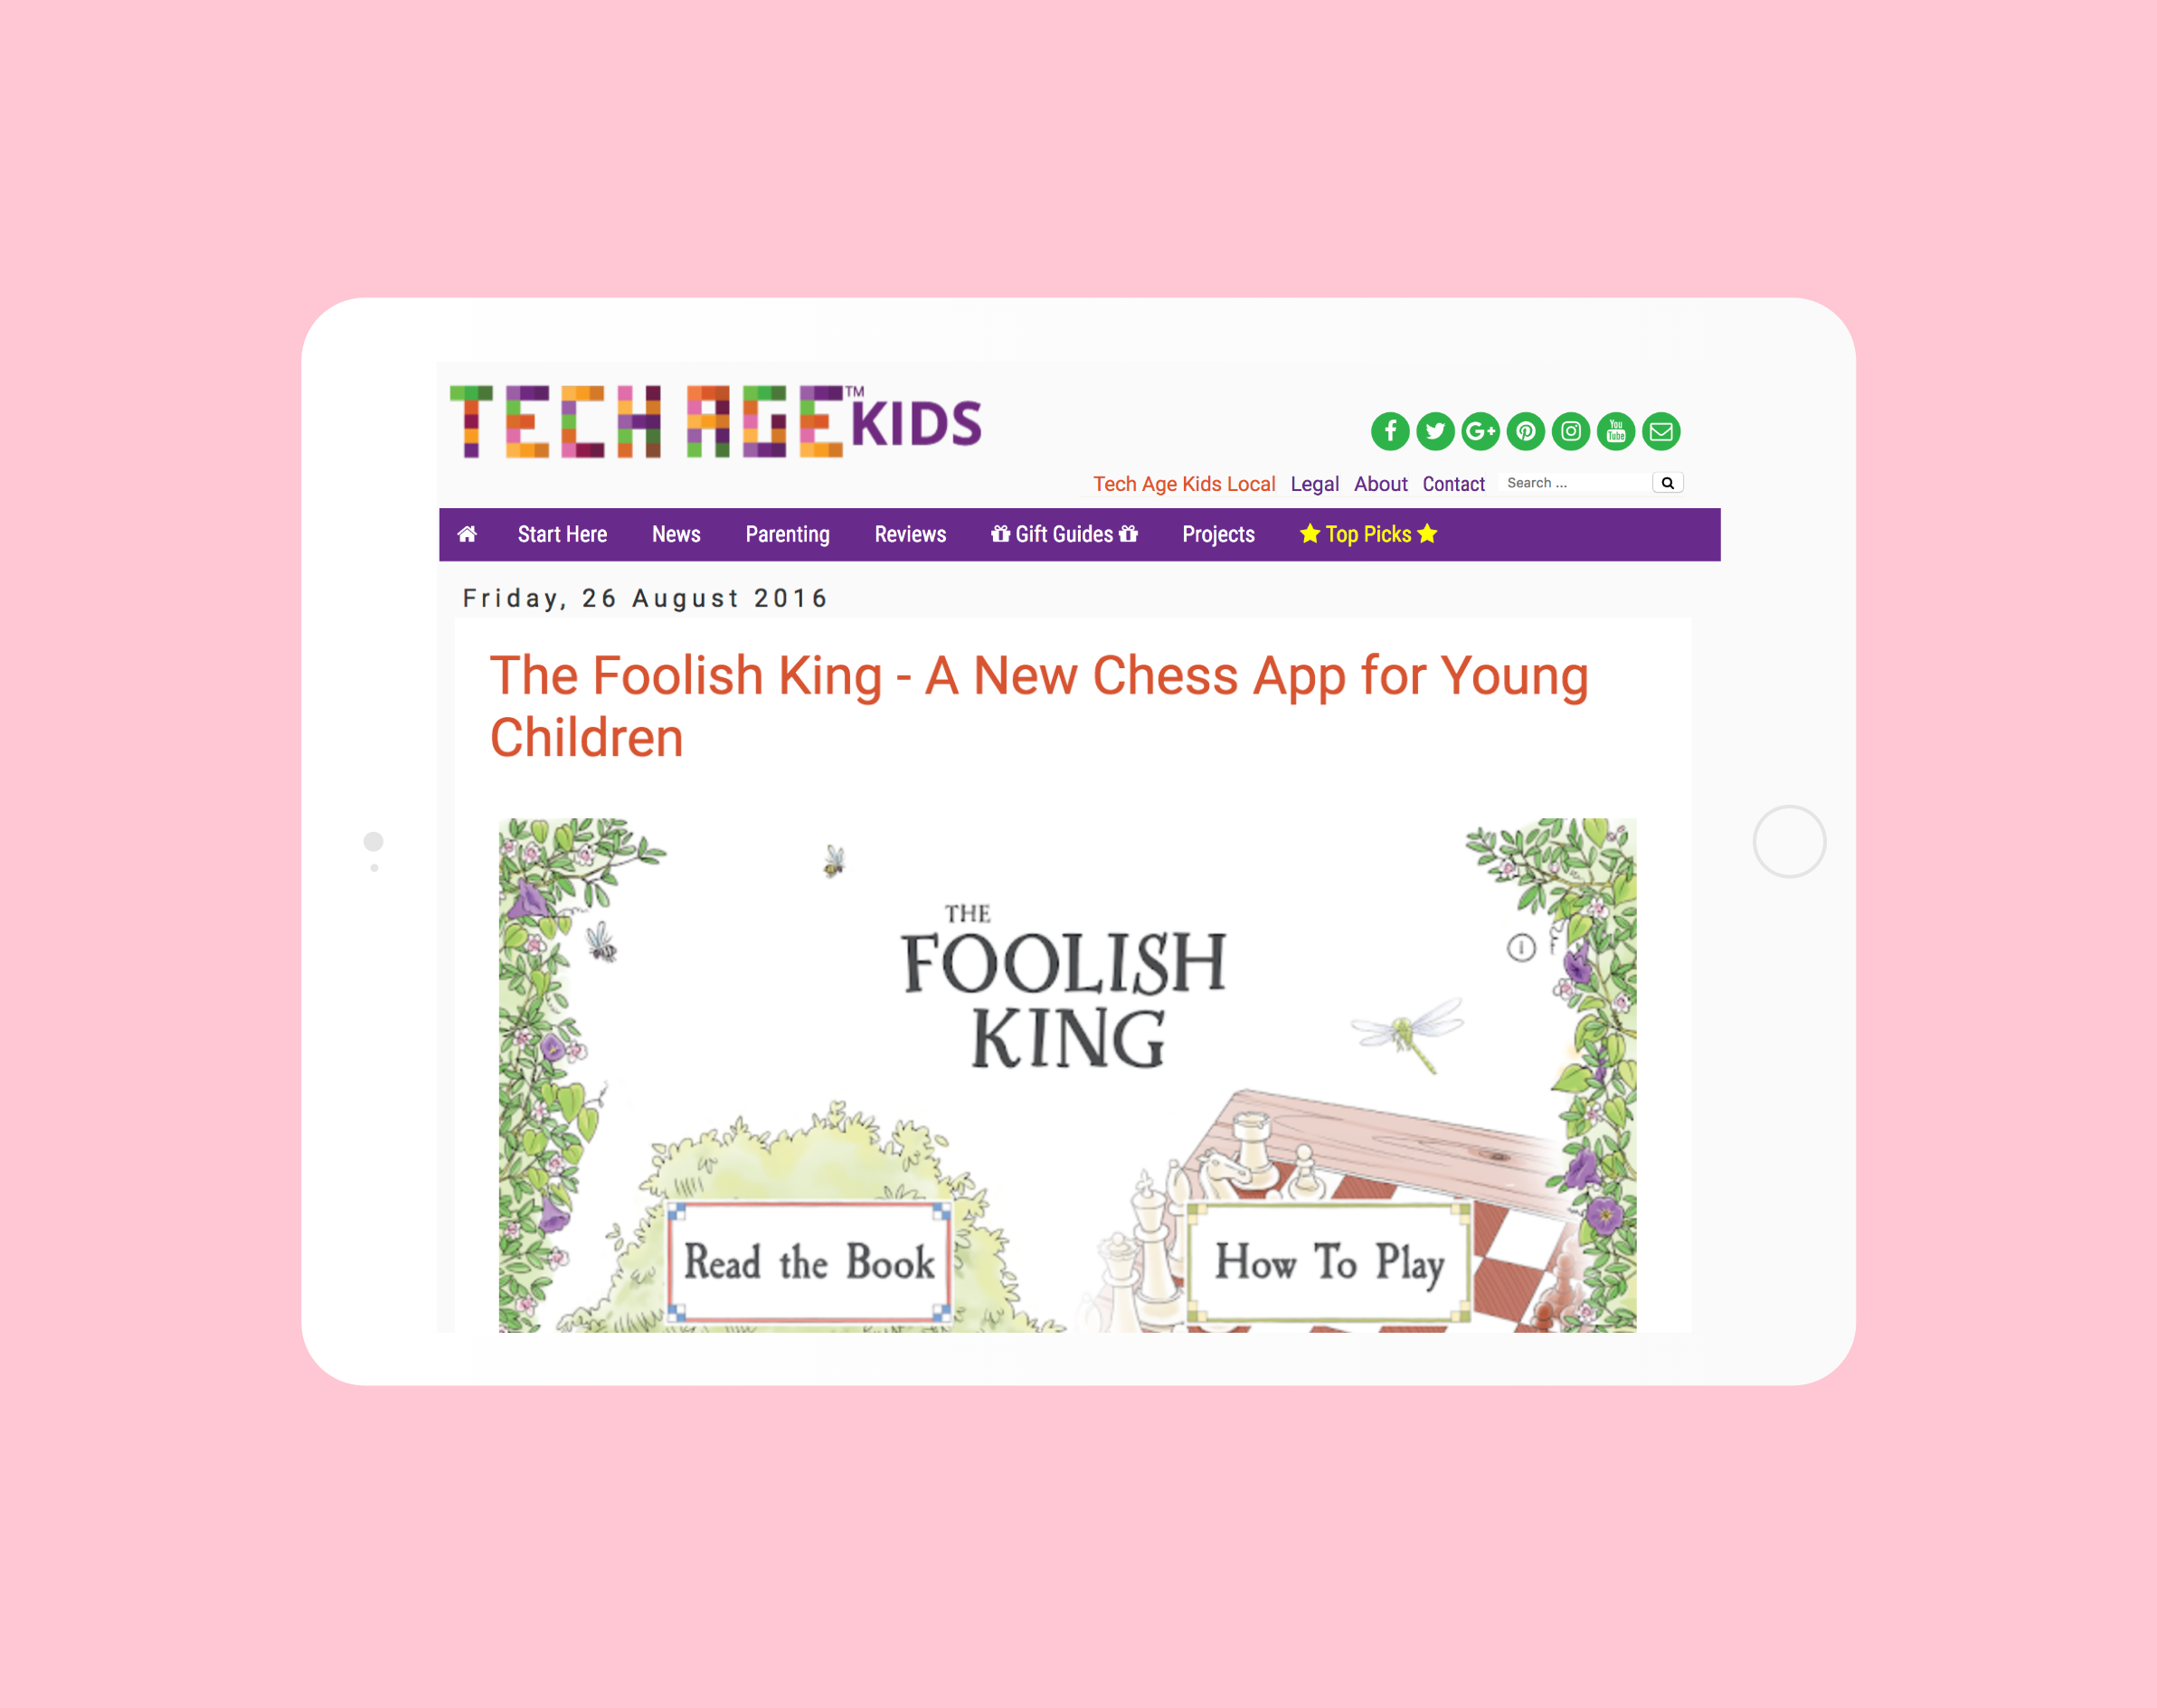 The Foolish King featured on Tech Age Kids